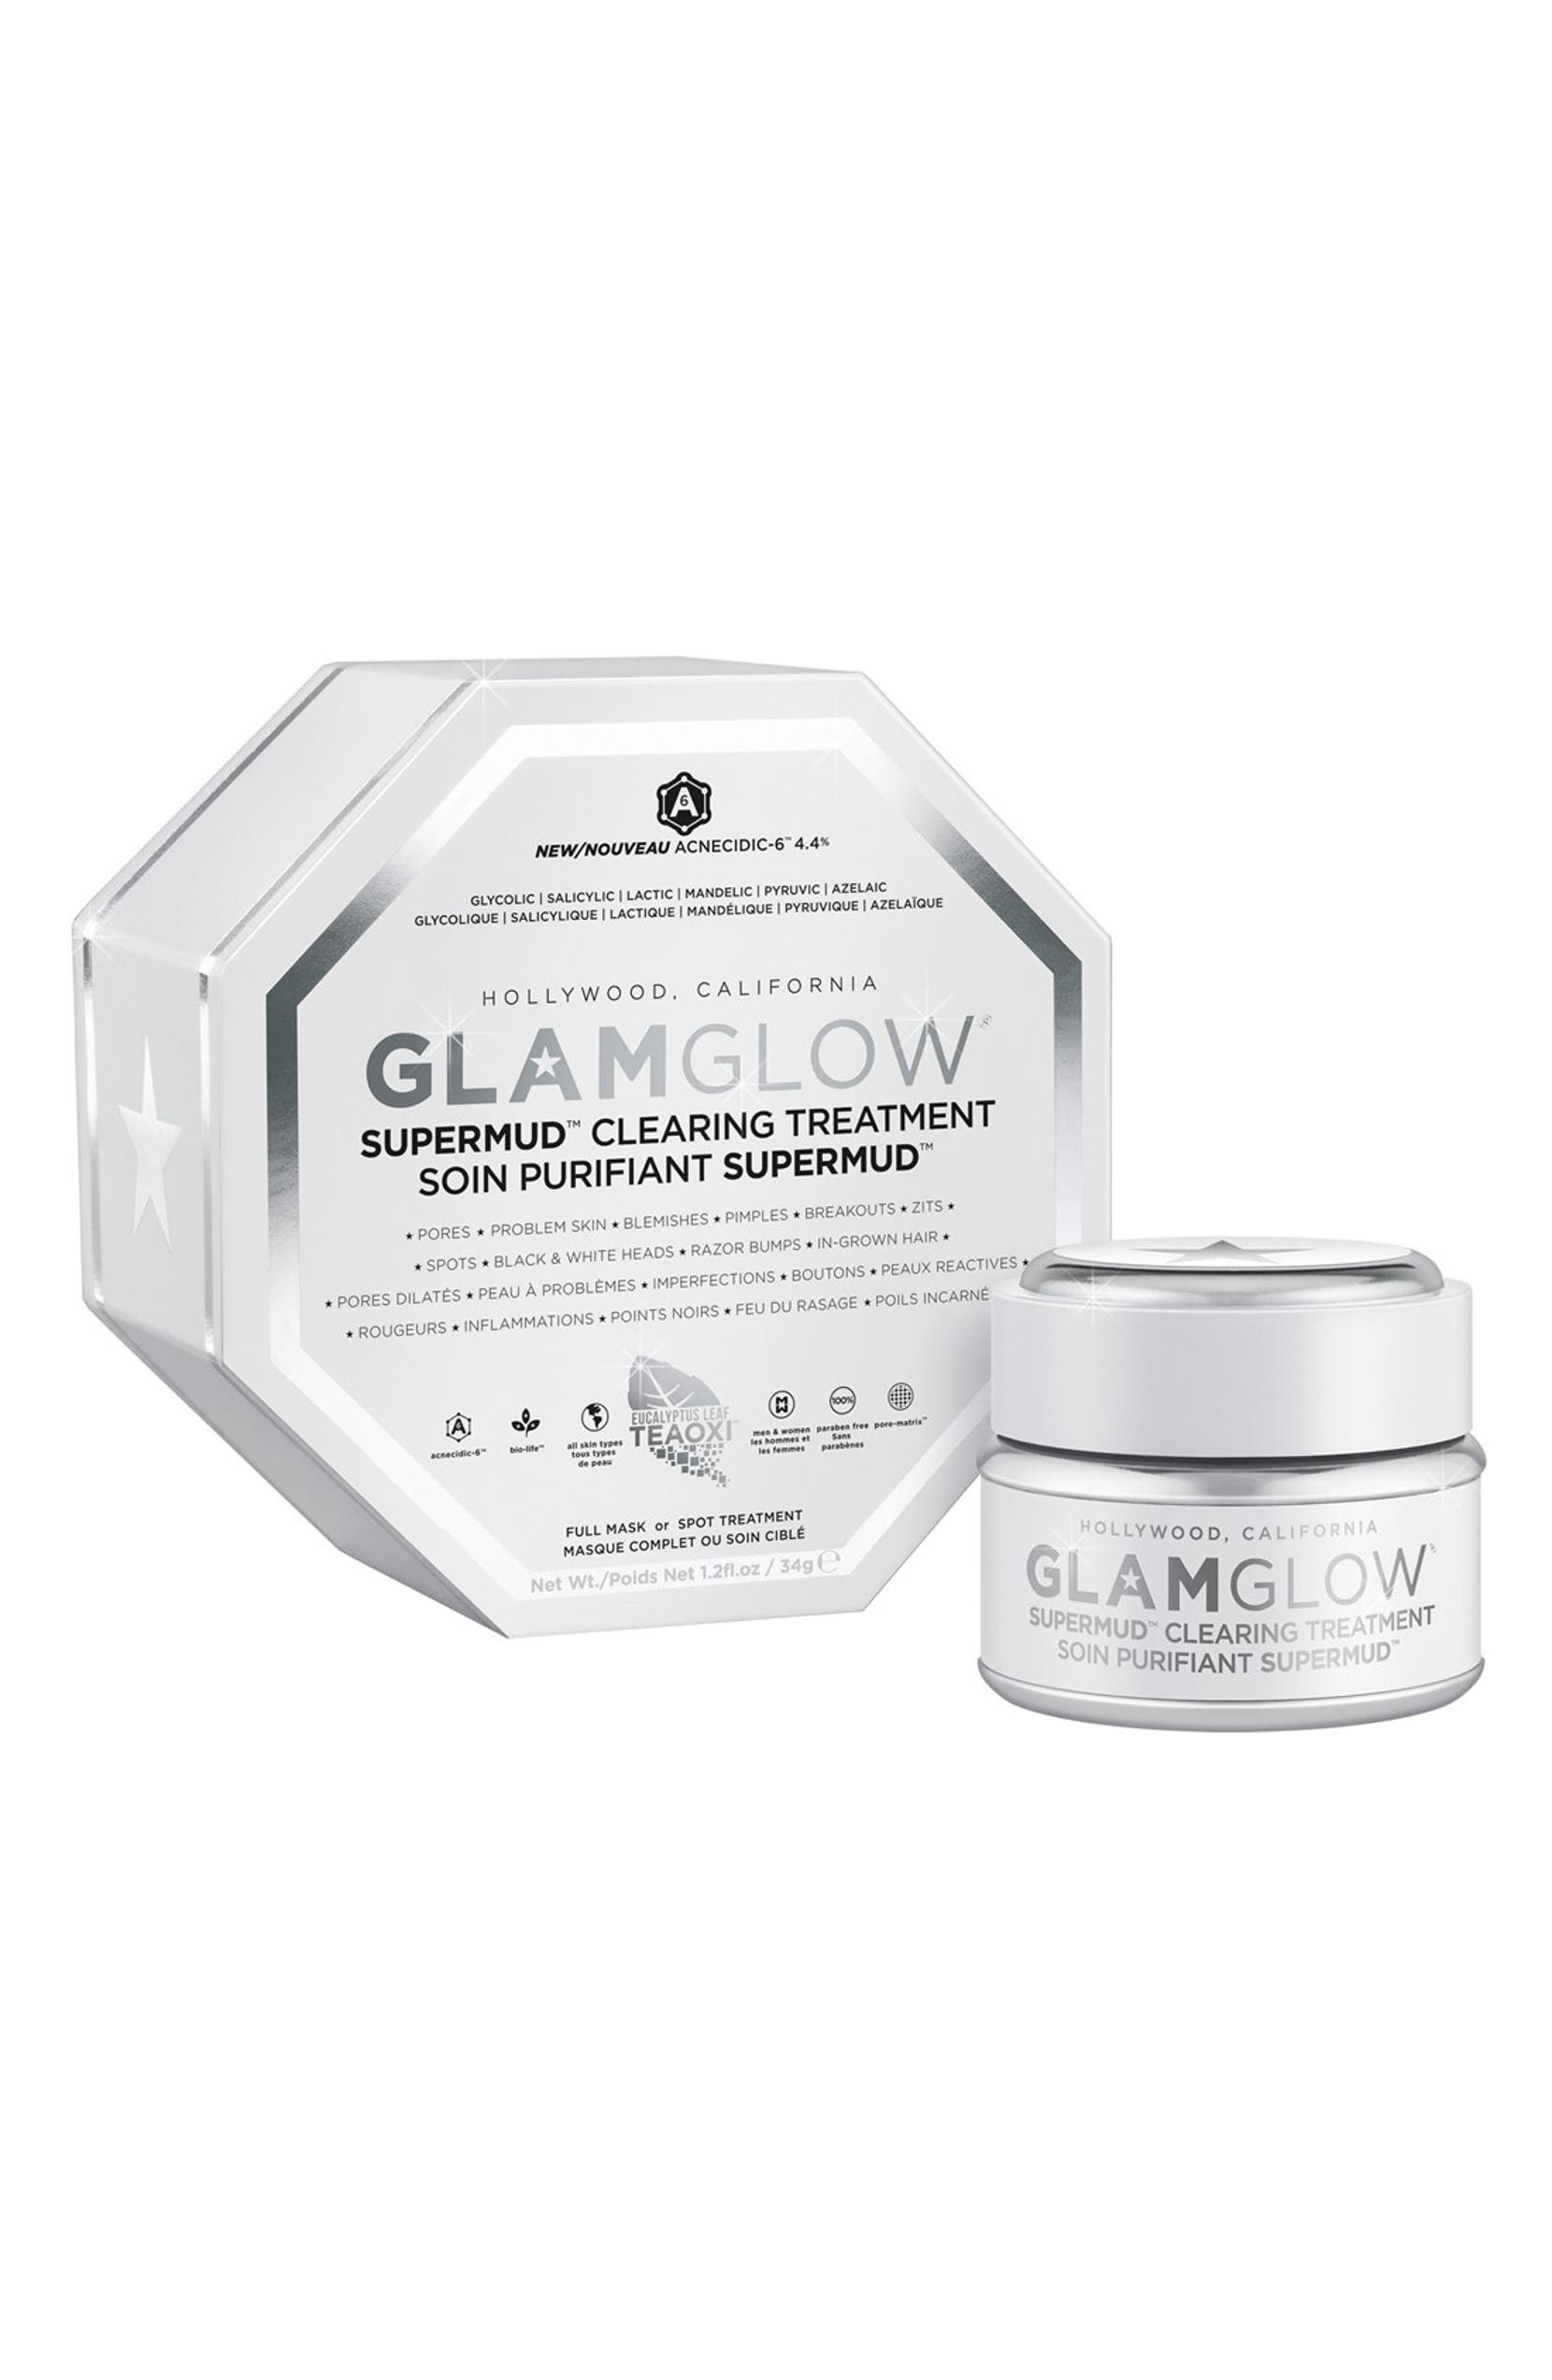 Supermud Clearing Treatment Glamglow Travel Size